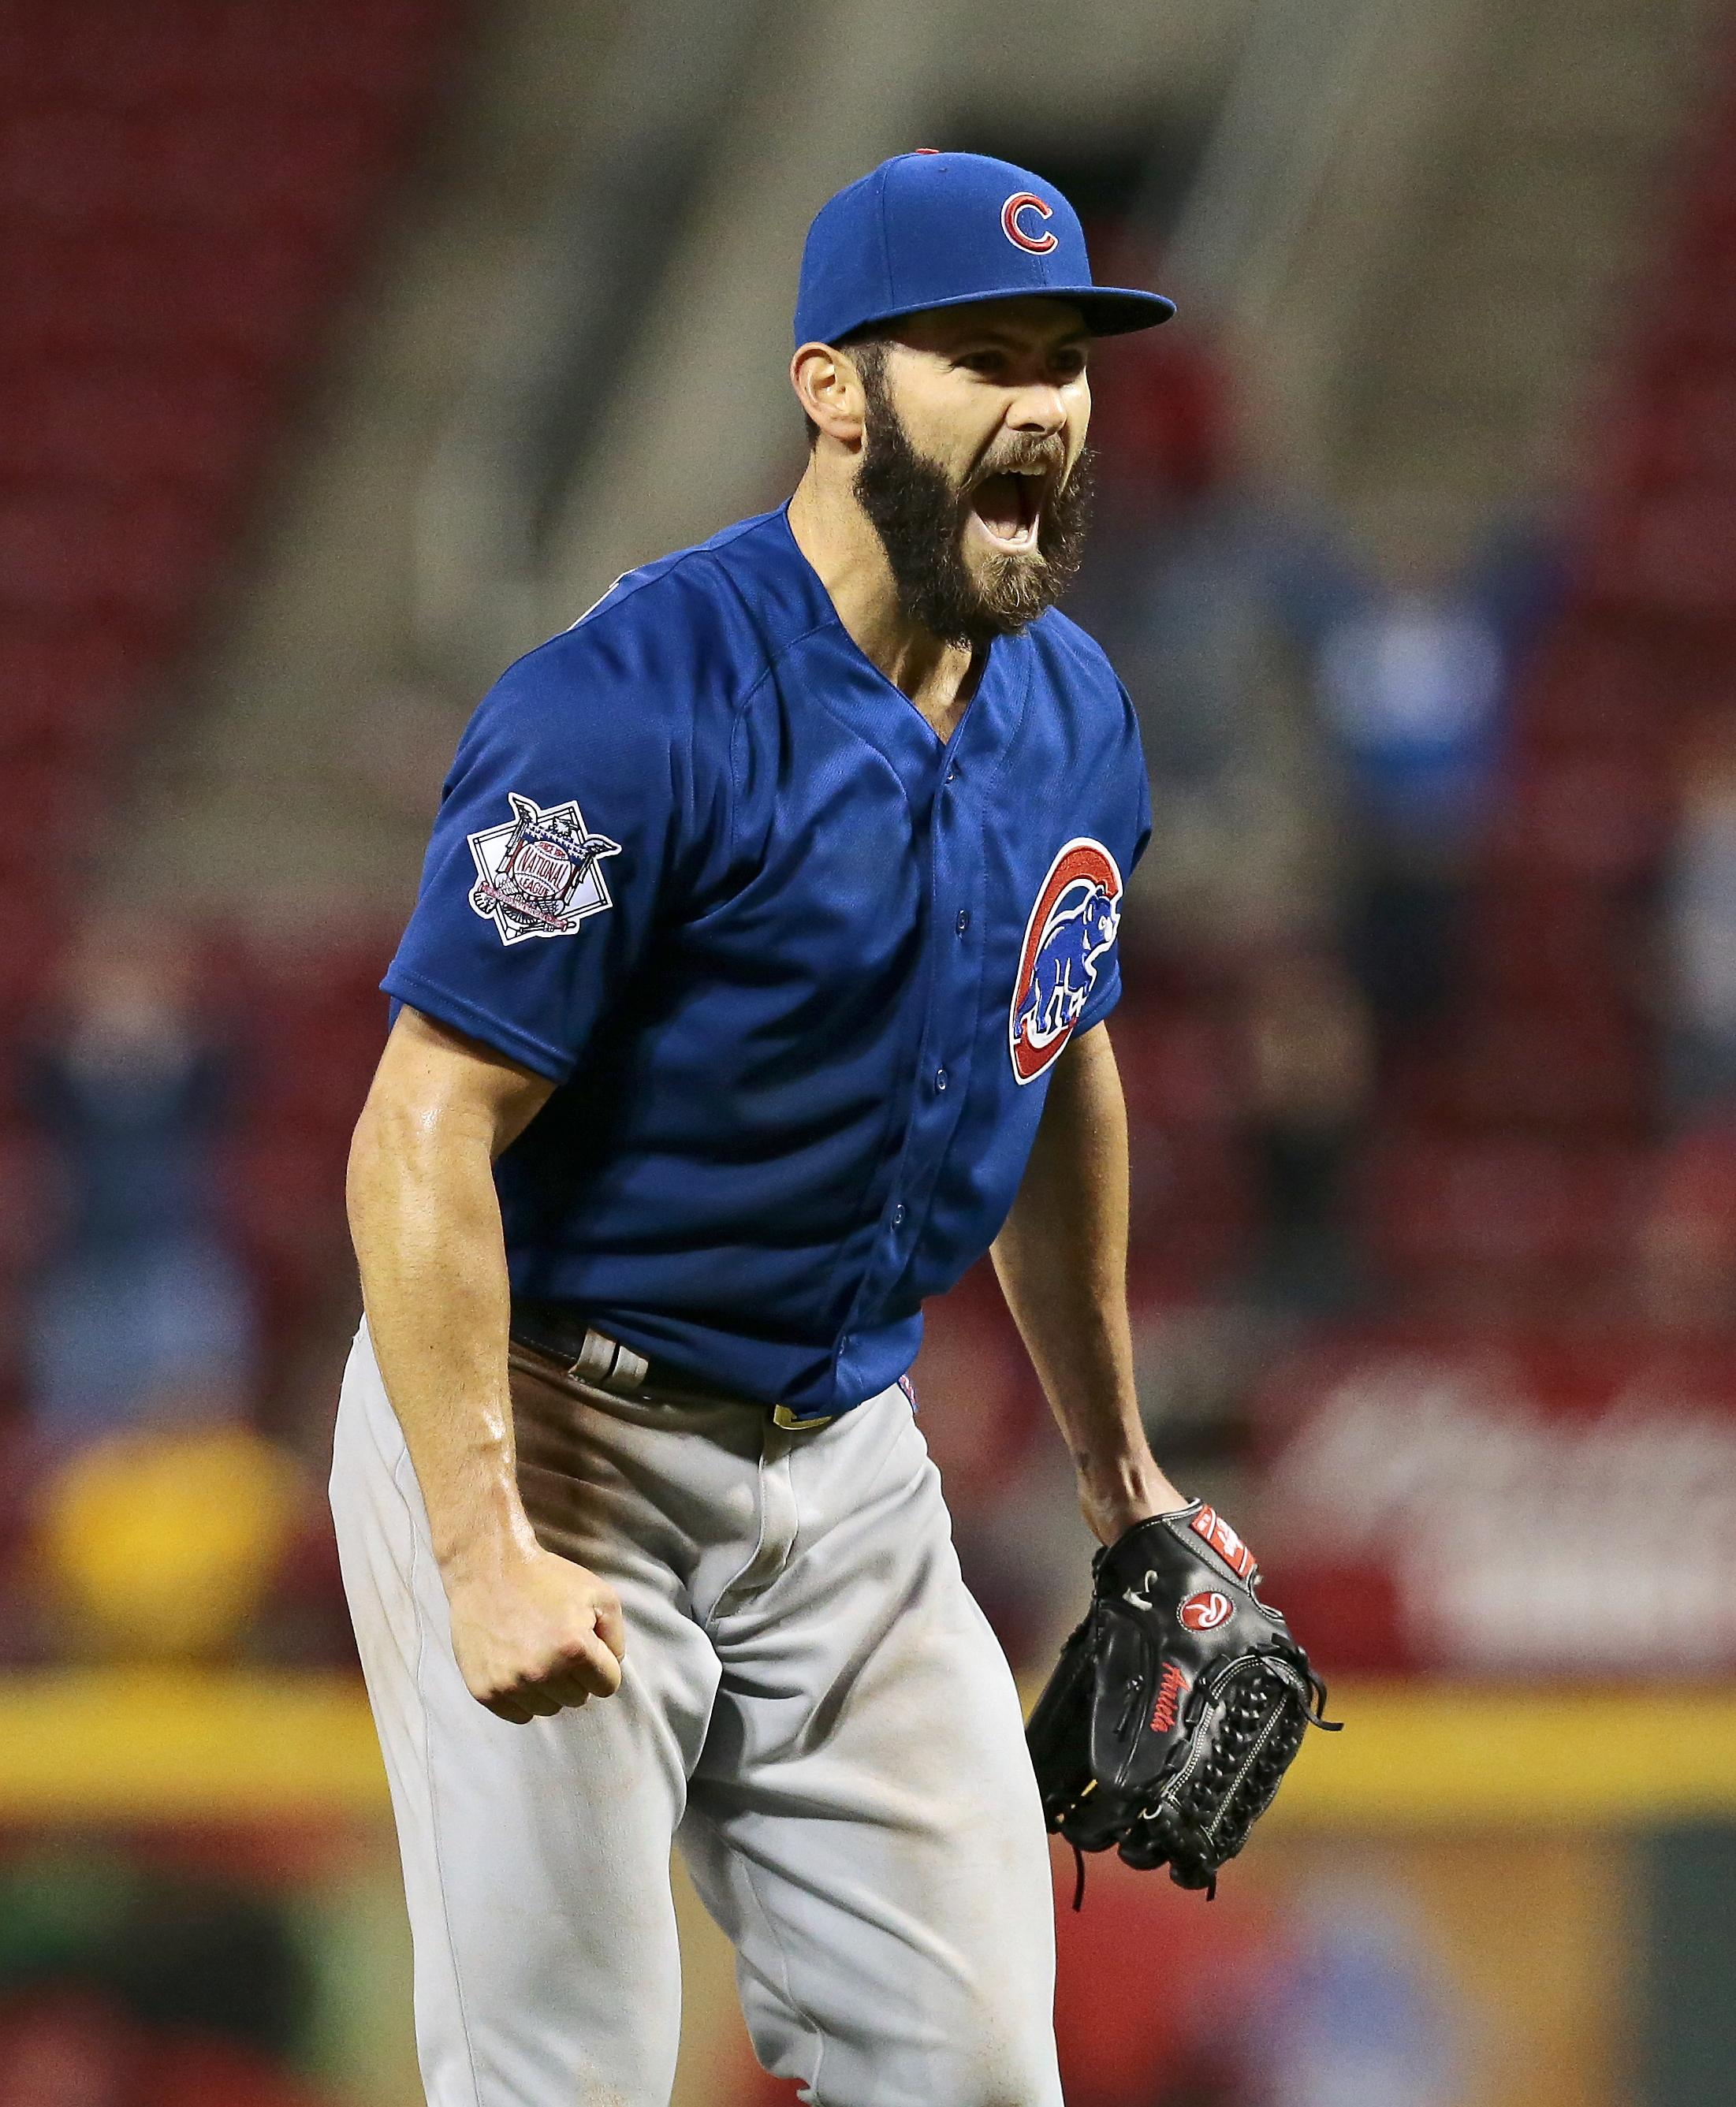 04 21 16 Auto Connection Magazine By Auto Connection: Cubs' Jake Arrieta Throws 2nd Career No-hitter